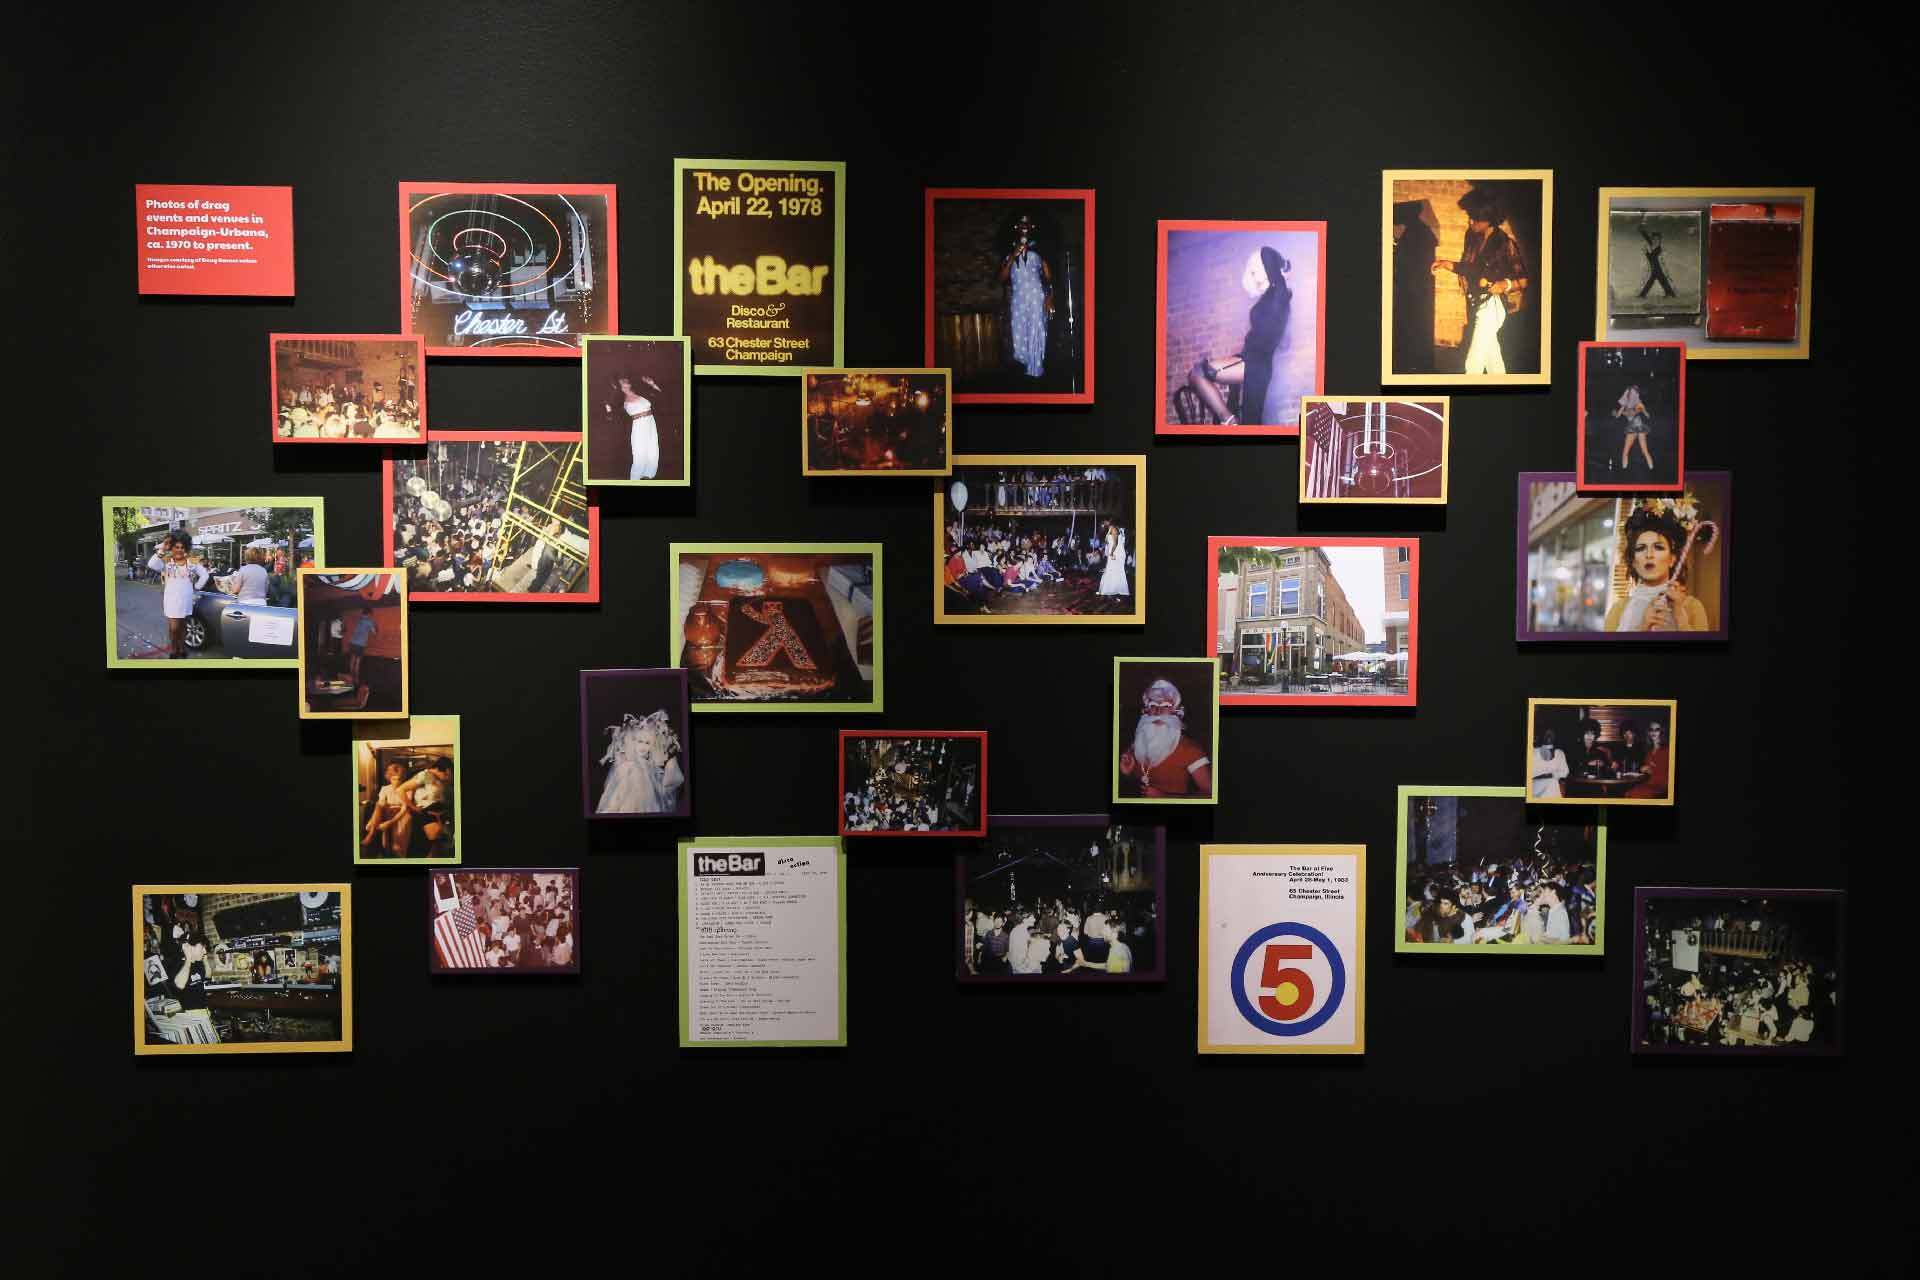 black wall with many photographs of drag events and other relevant imagery